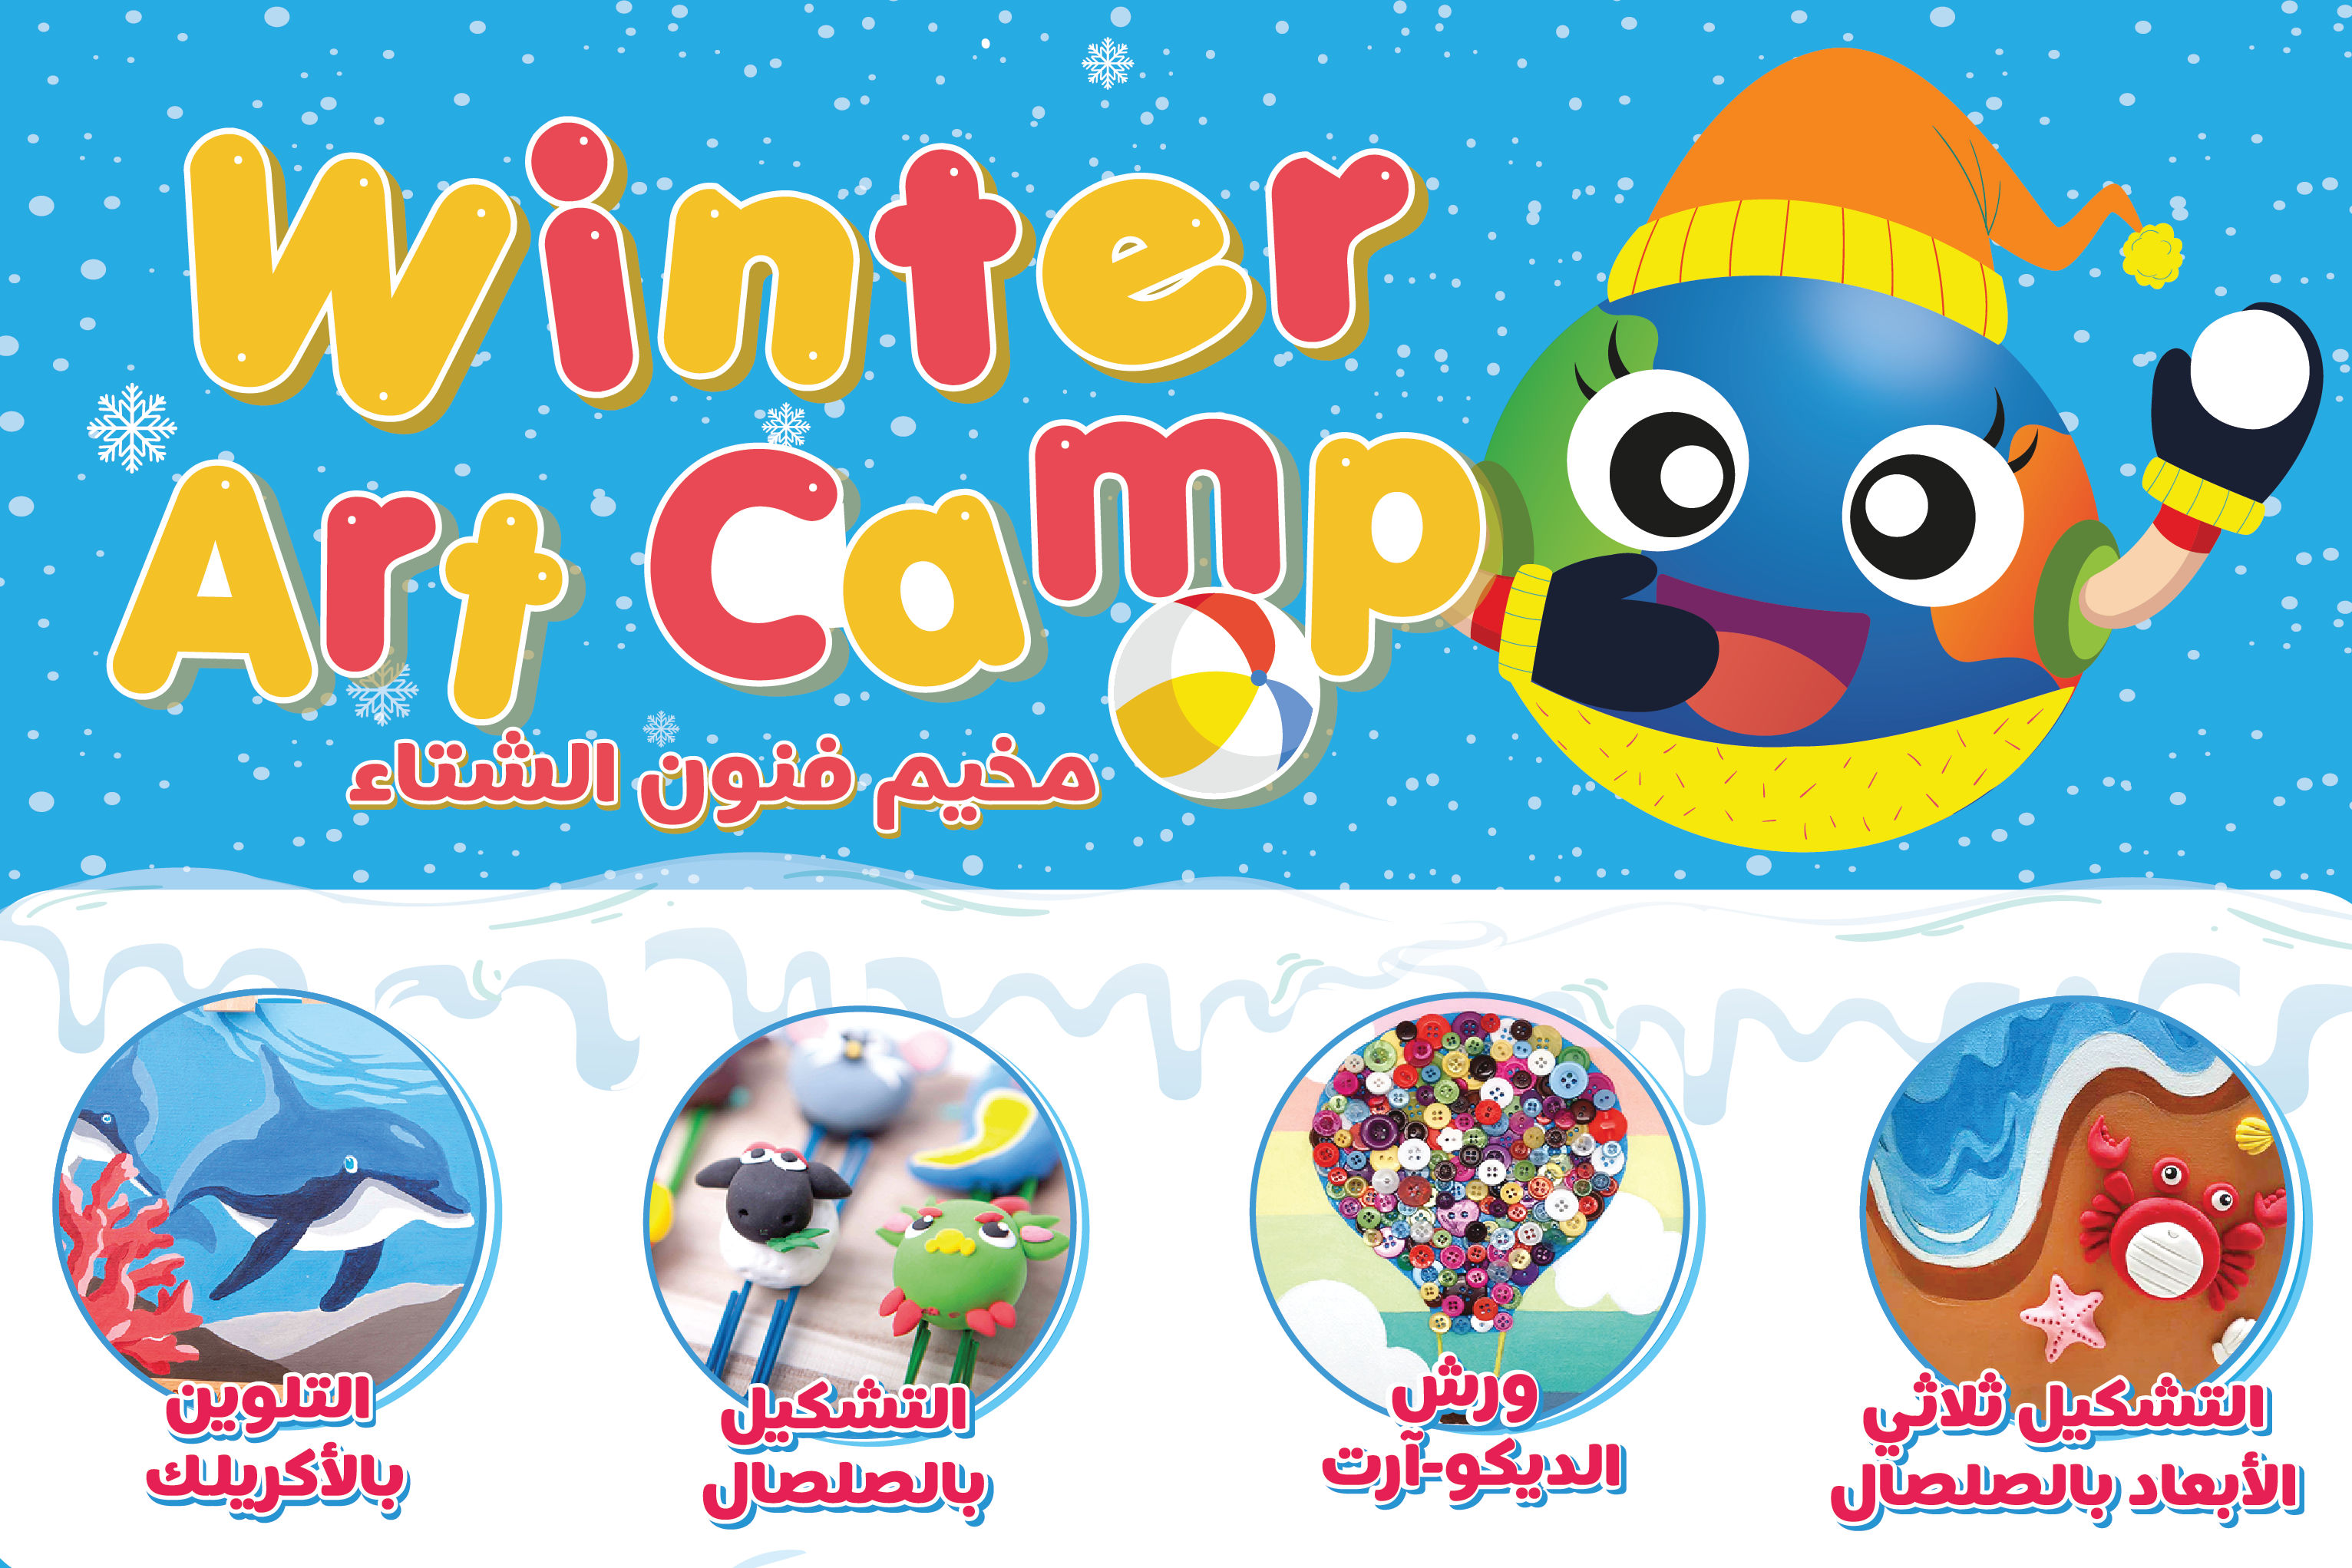 المخيم الشتوي (Winter Art Camp)